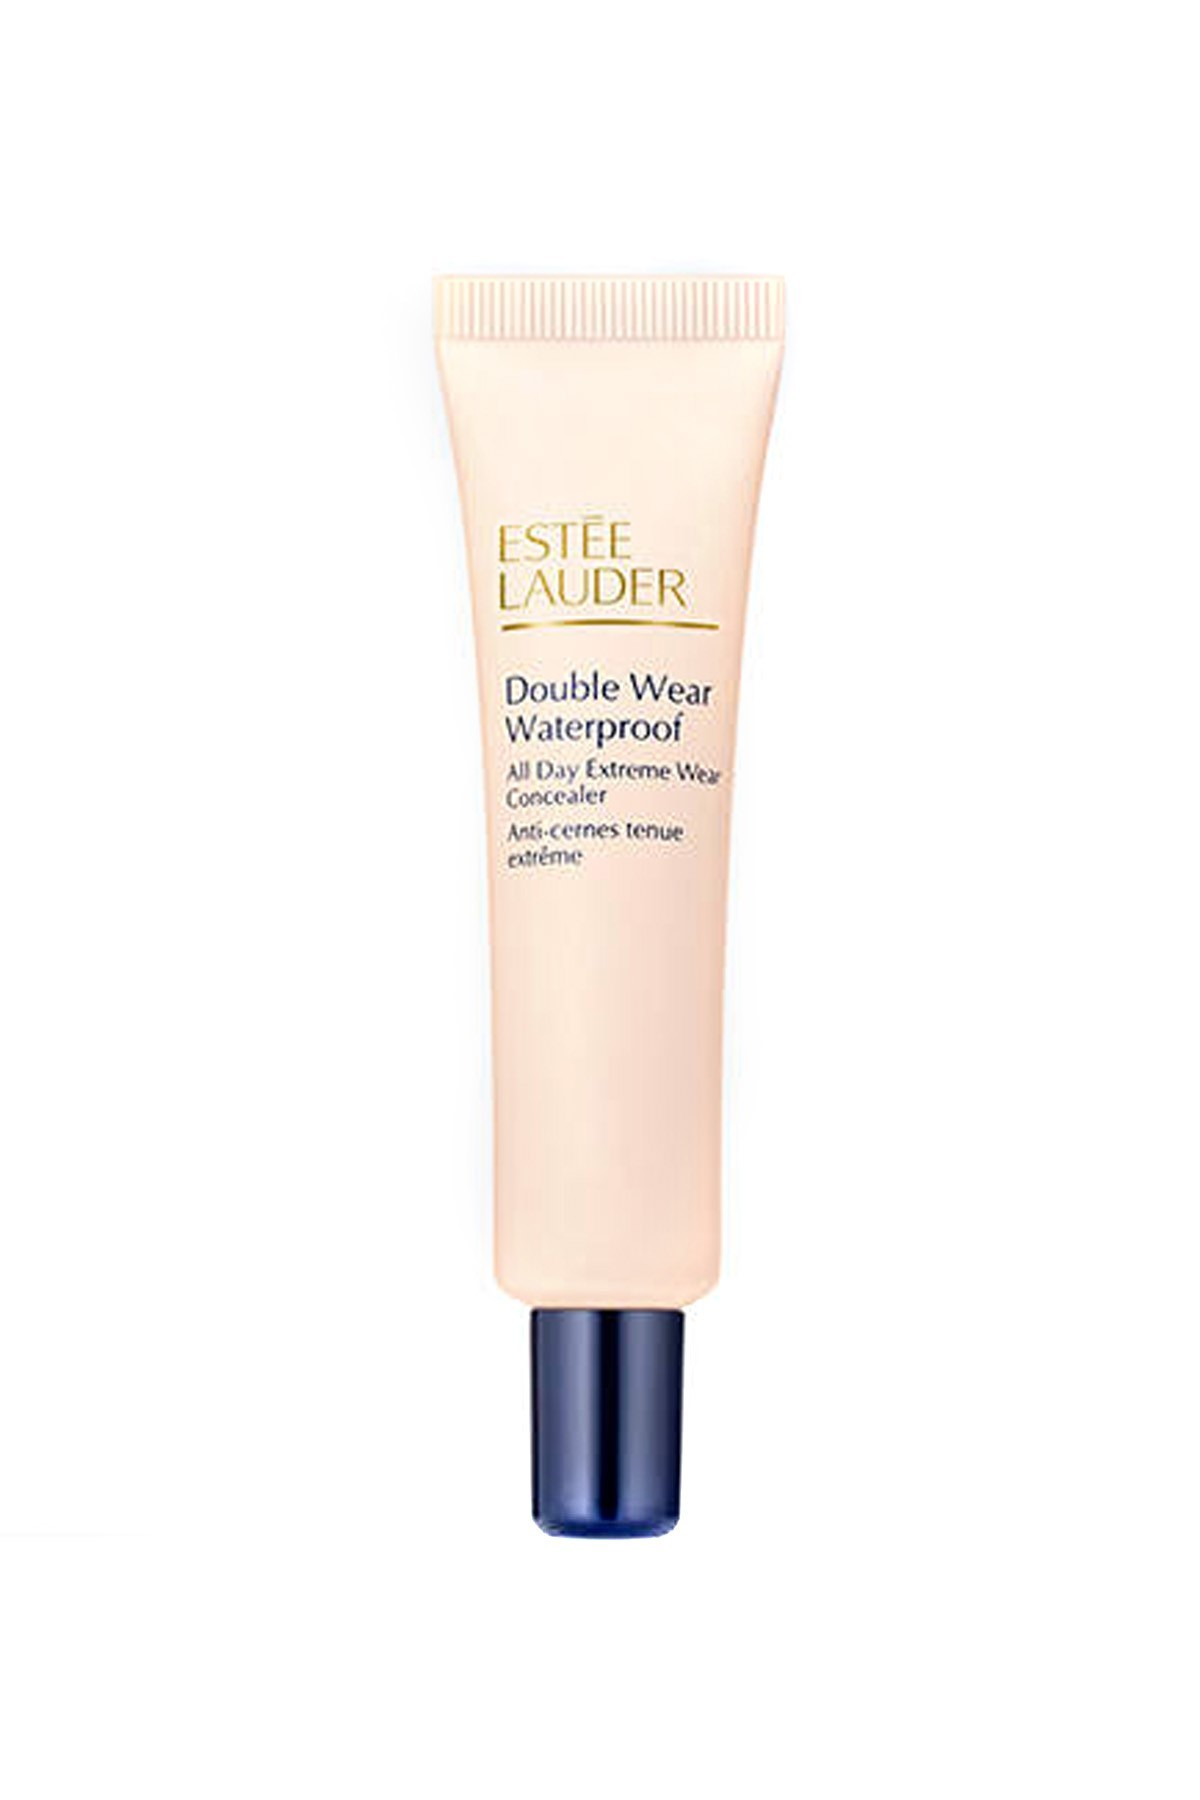 Estee Lauder Kapatıcı – Double Wear Waterproof All Day Extreme Concealer 1c Light Cool 30 Ml 887167217492 – 138.6 TL